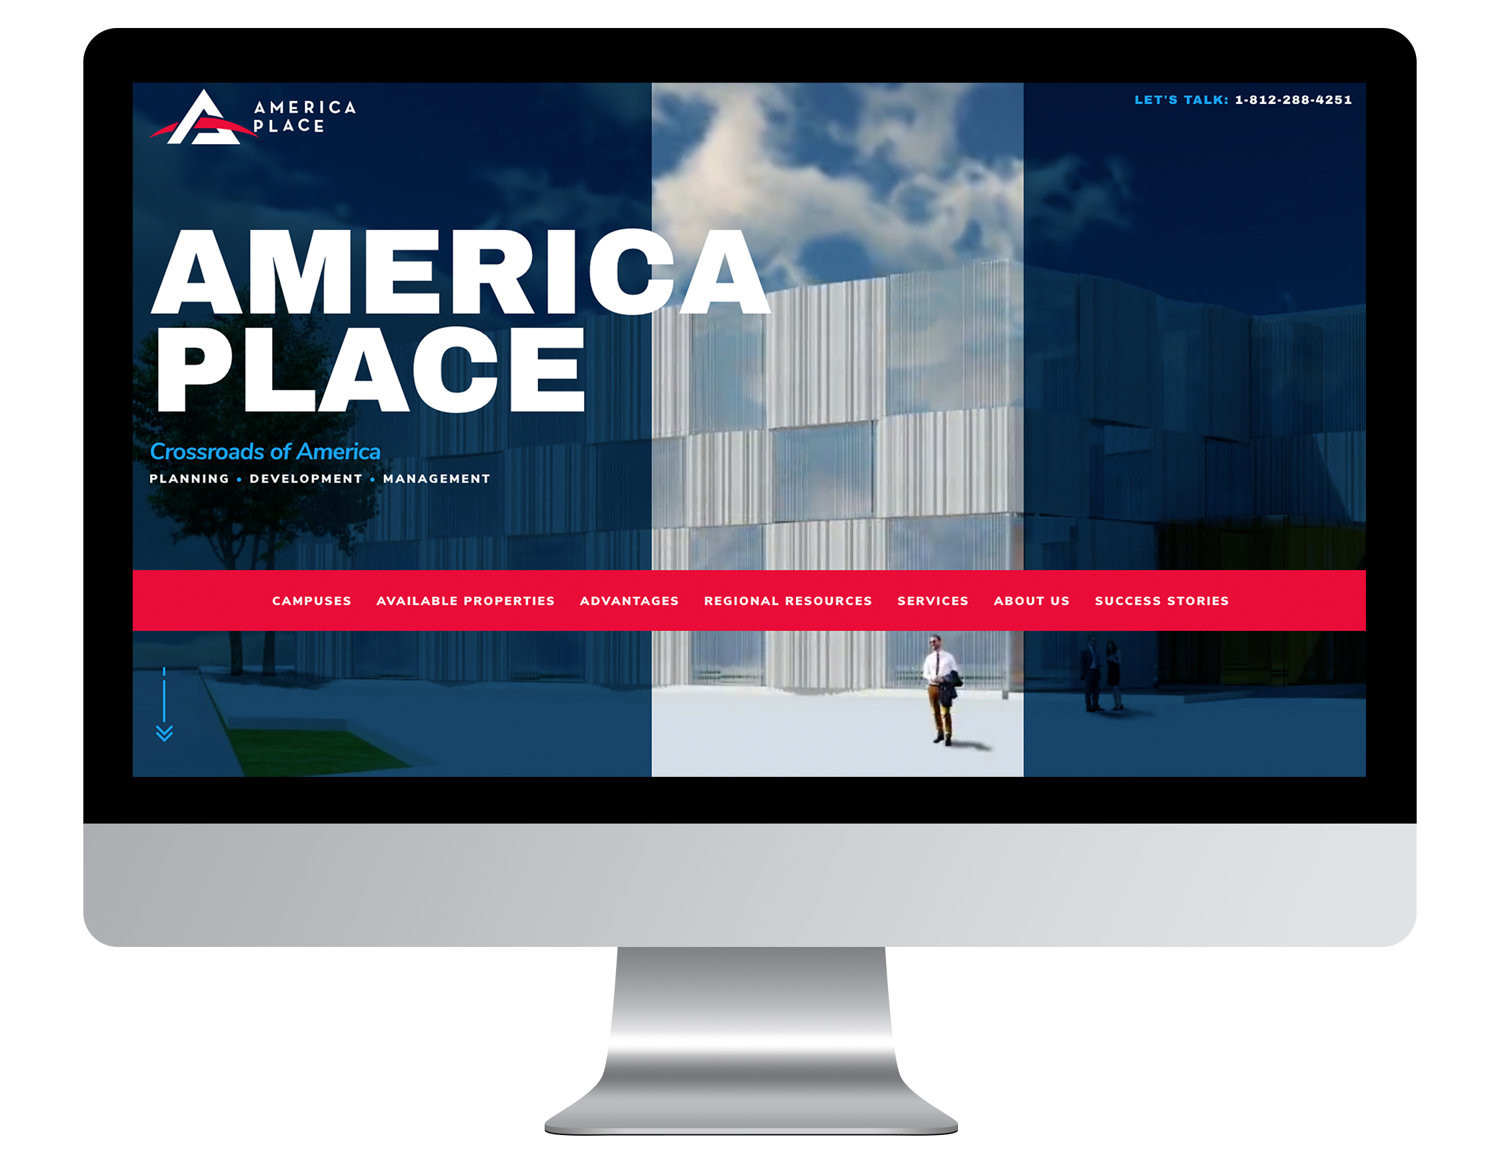 America Place homepage view